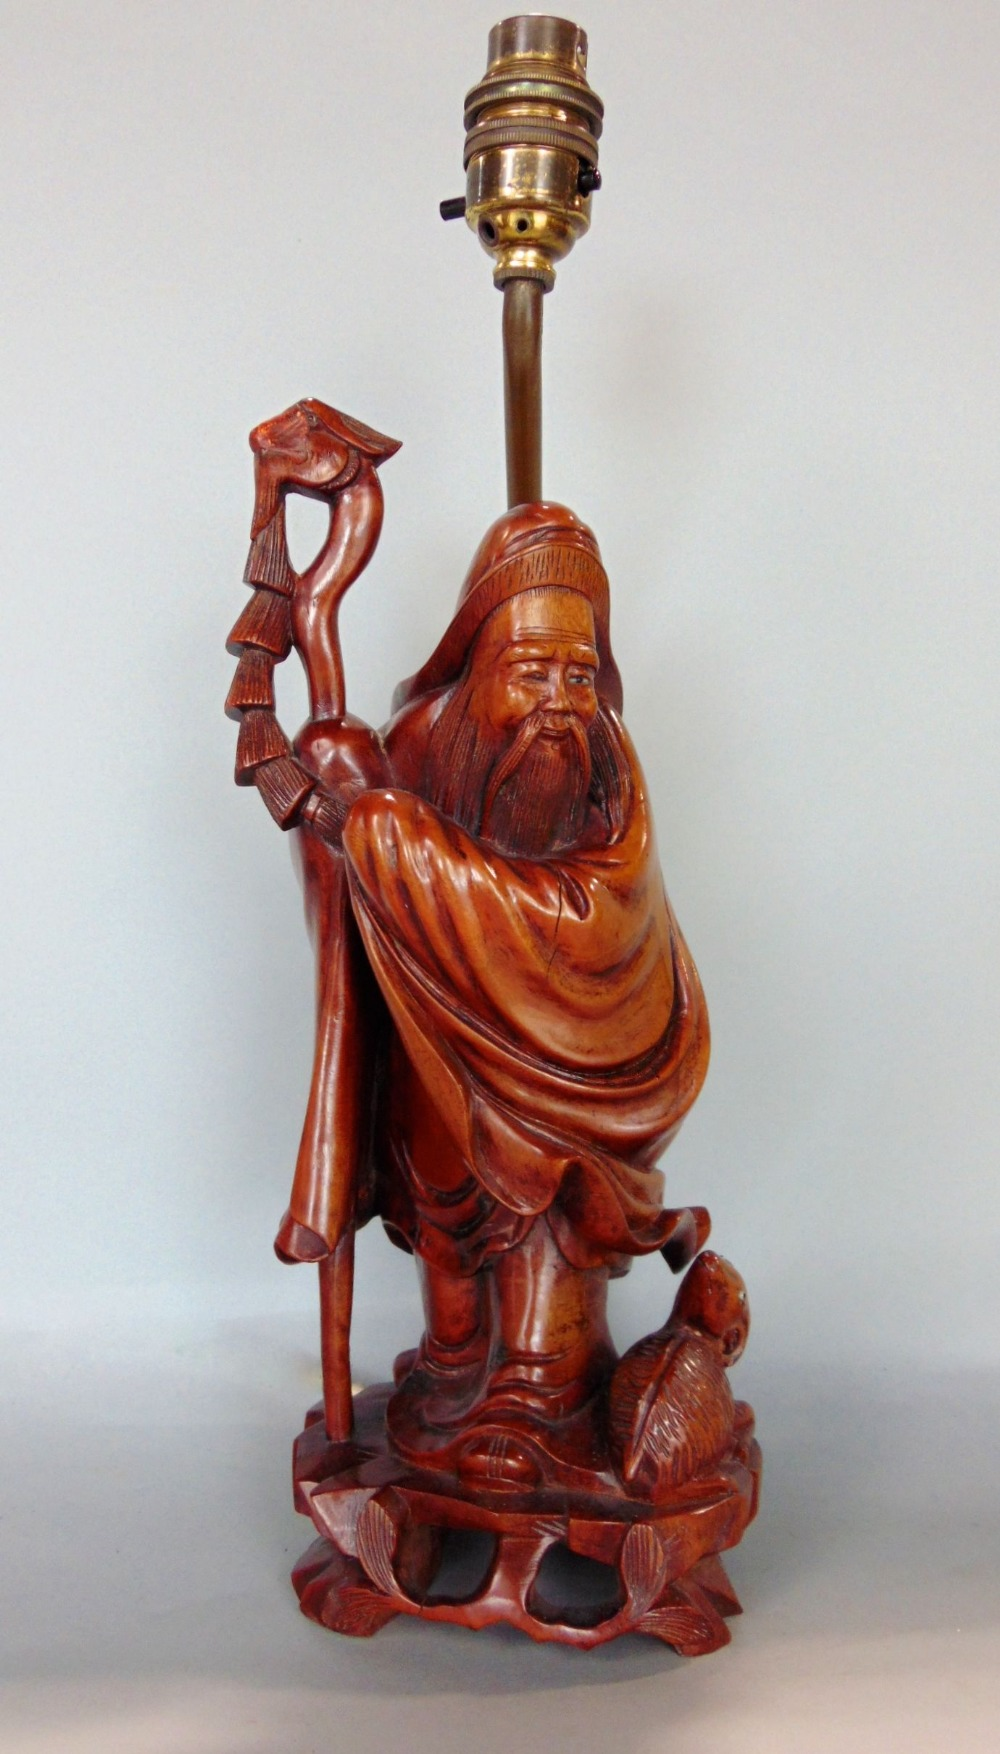 Lot 861 - Chinese hardwood carving of a standing sage holding a staff, 30 cm high, converted into a table